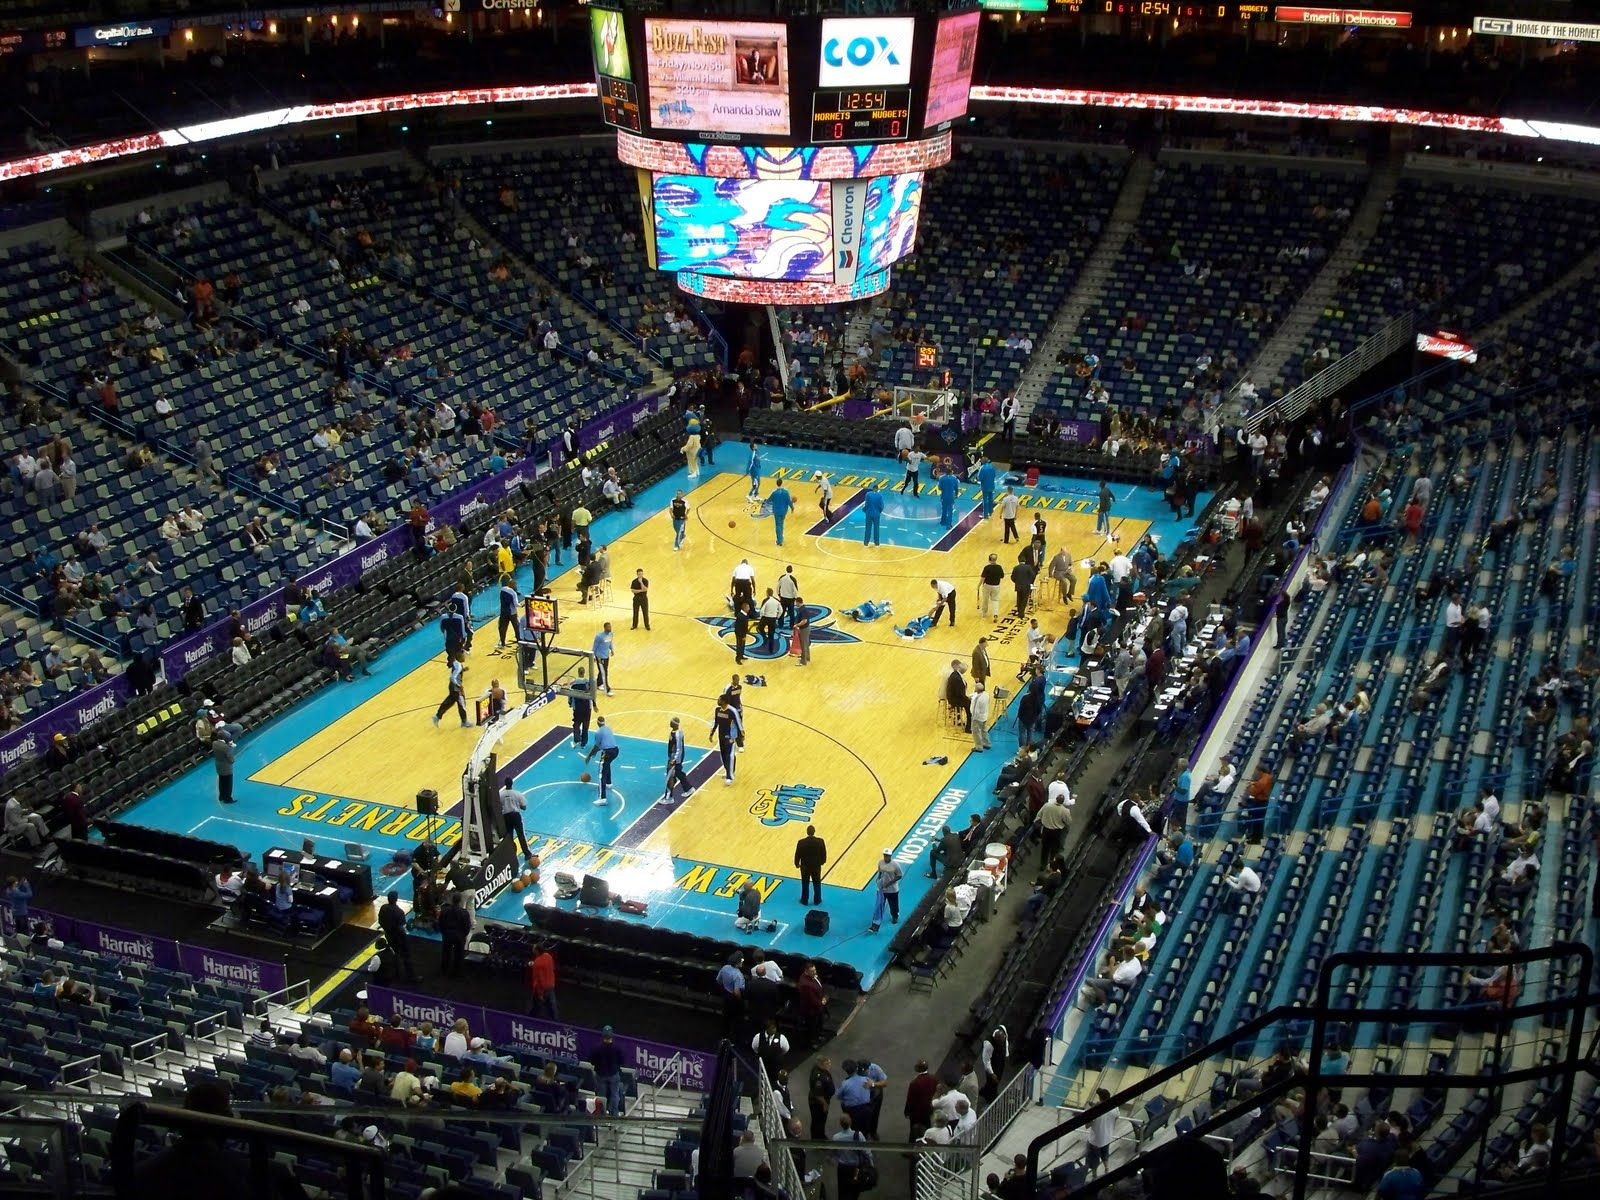 New Orleans Arena (The Hive), New Orleans LA